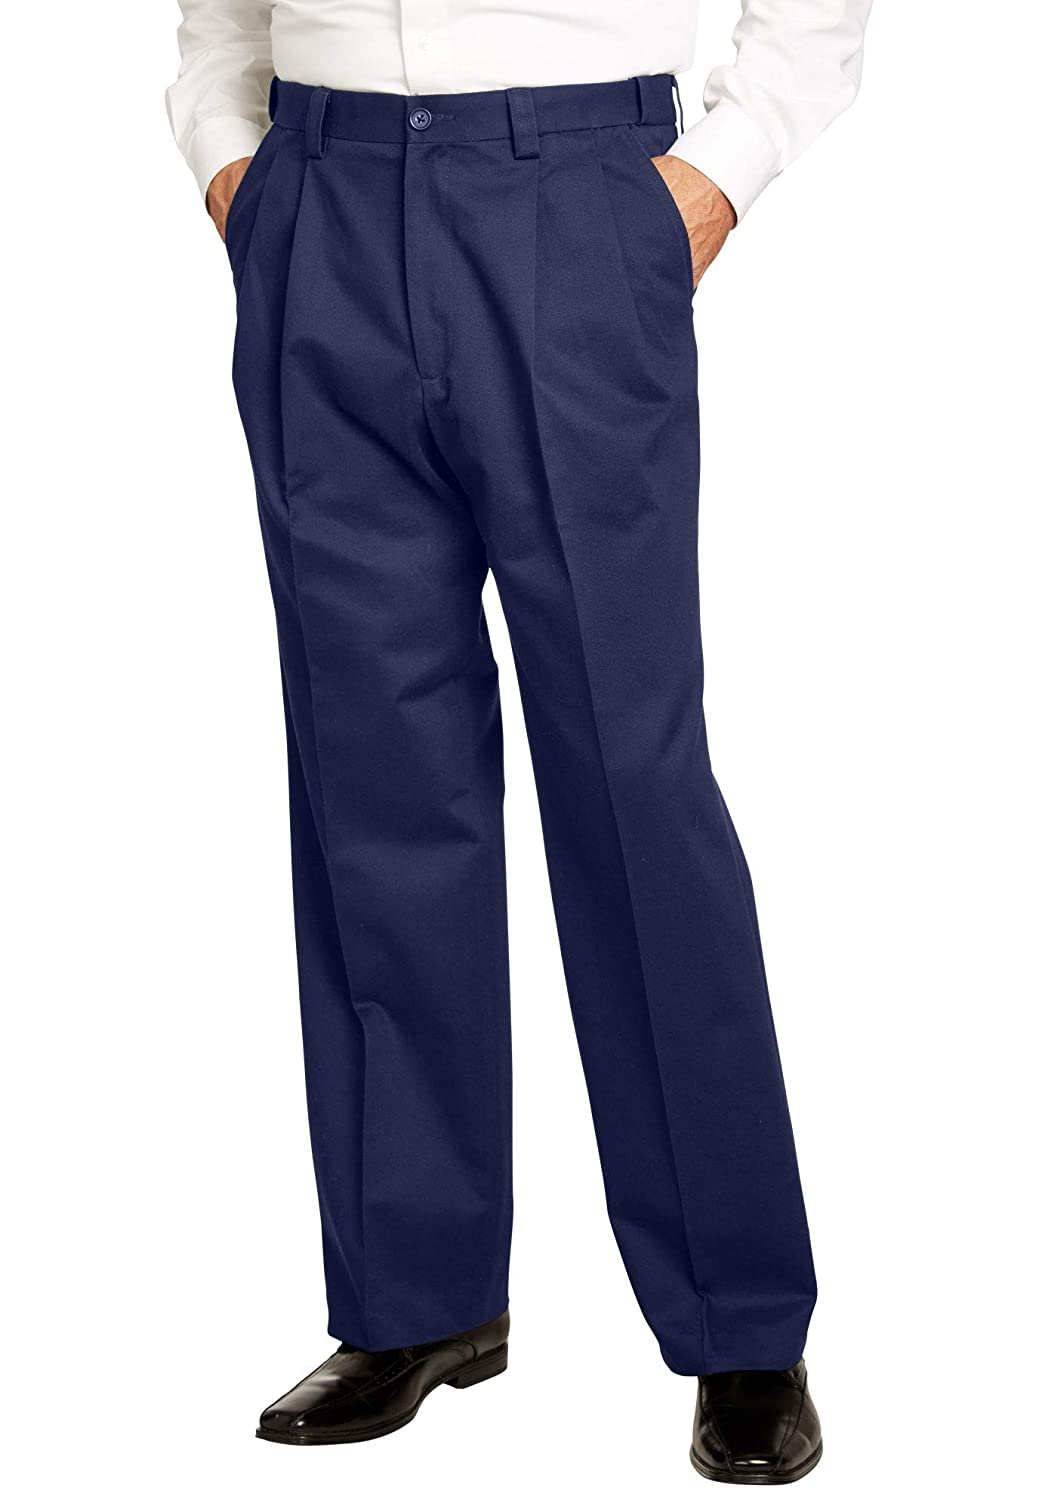 KingSize Mens Big /& Tall Relaxed Fit Wrinkle-Free Expandable Waist Pleated Pants